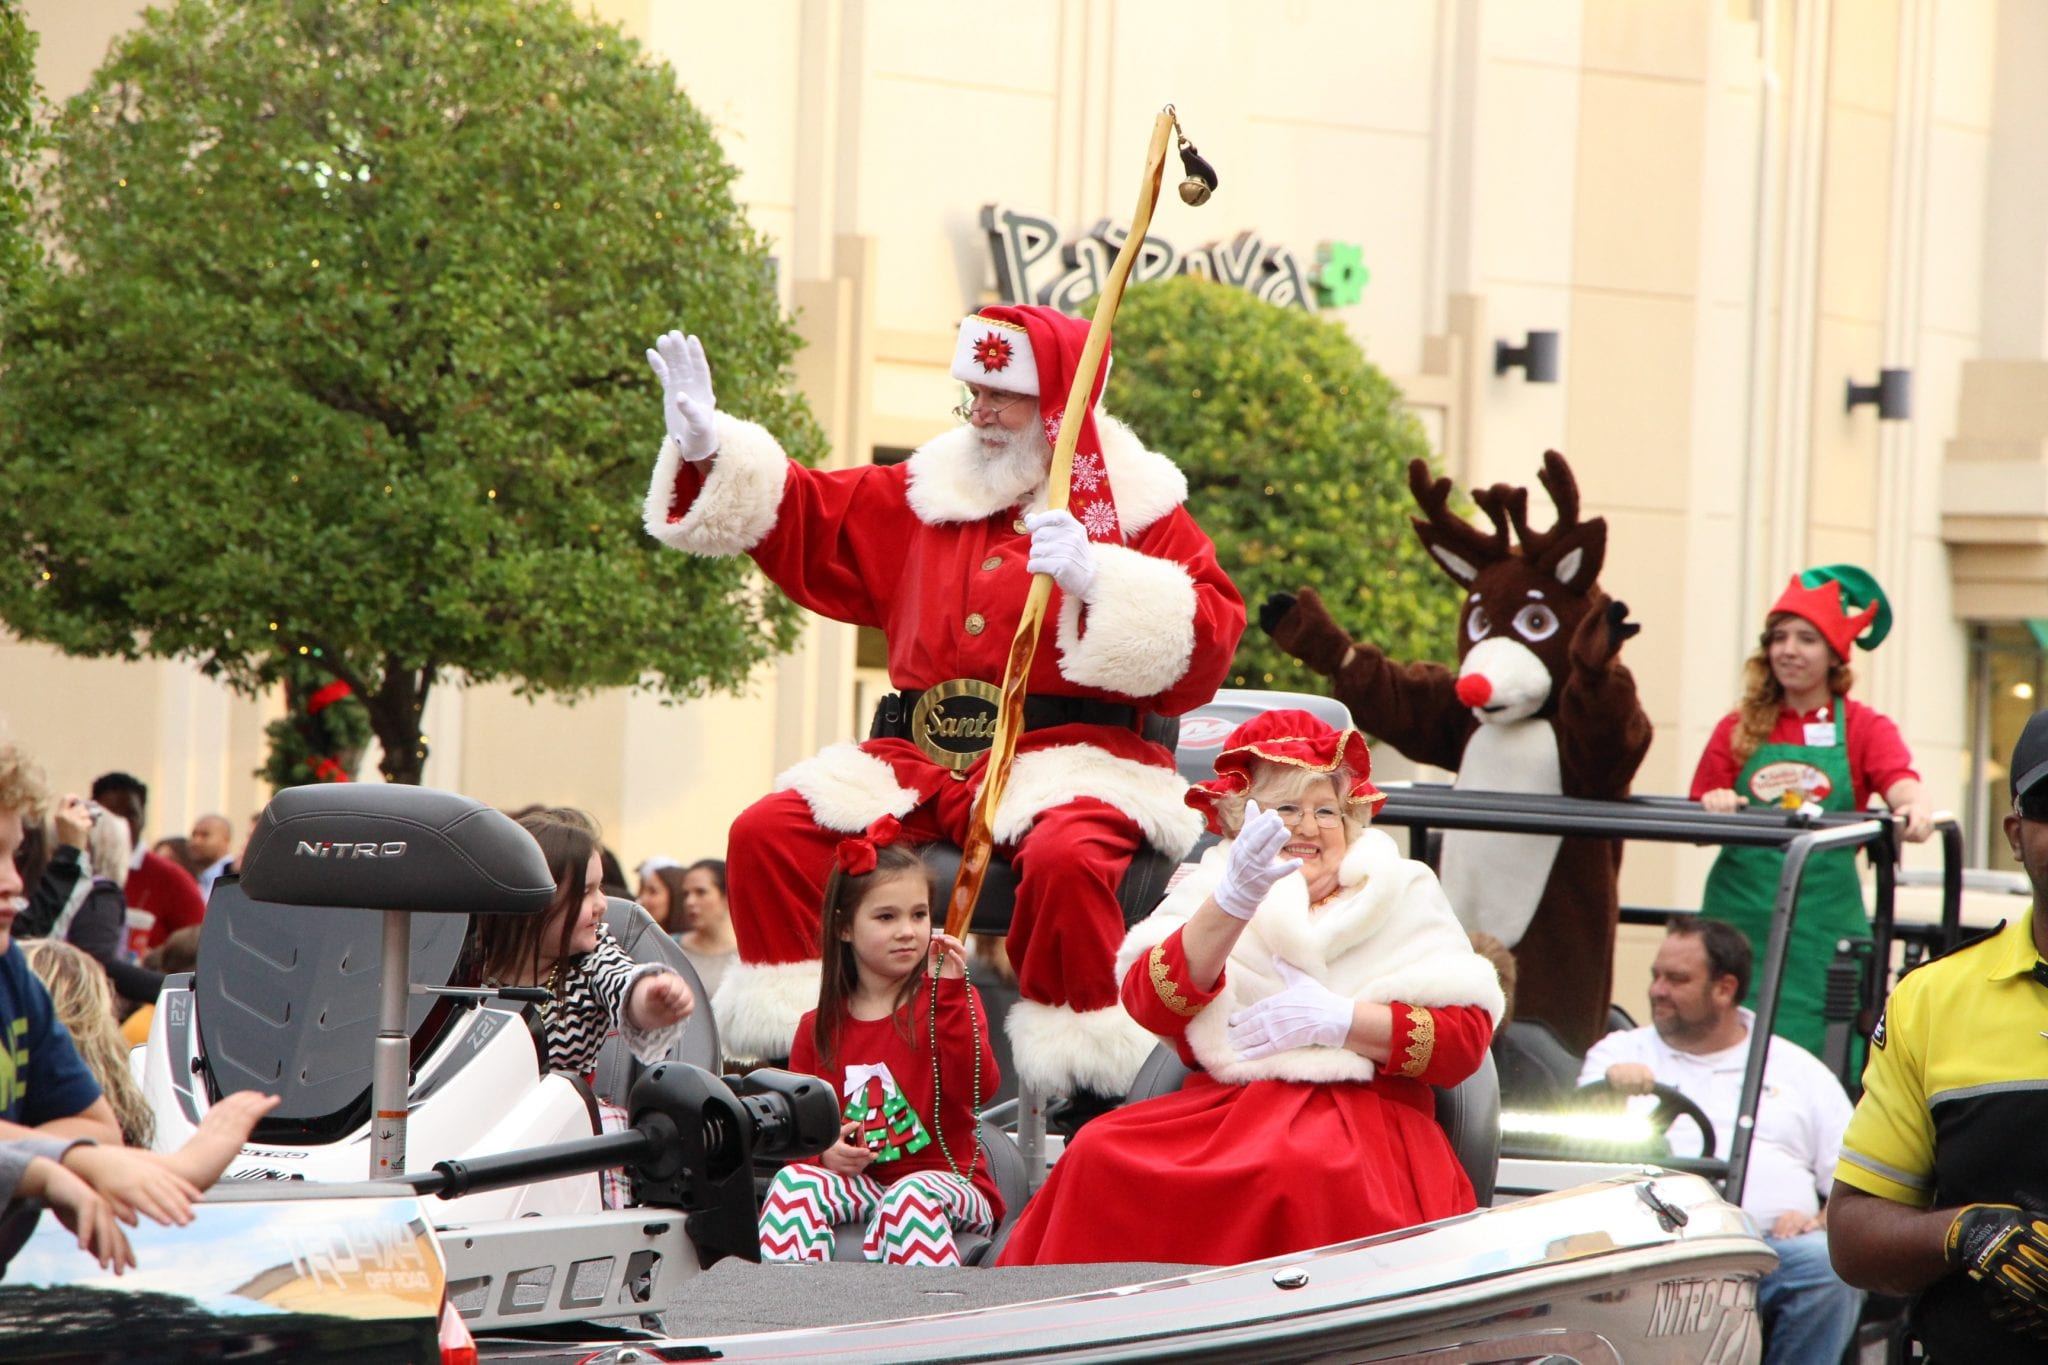 Gallery: Bass Pro Shops Christmas Parade 2015 - Bossier Press-Tribune